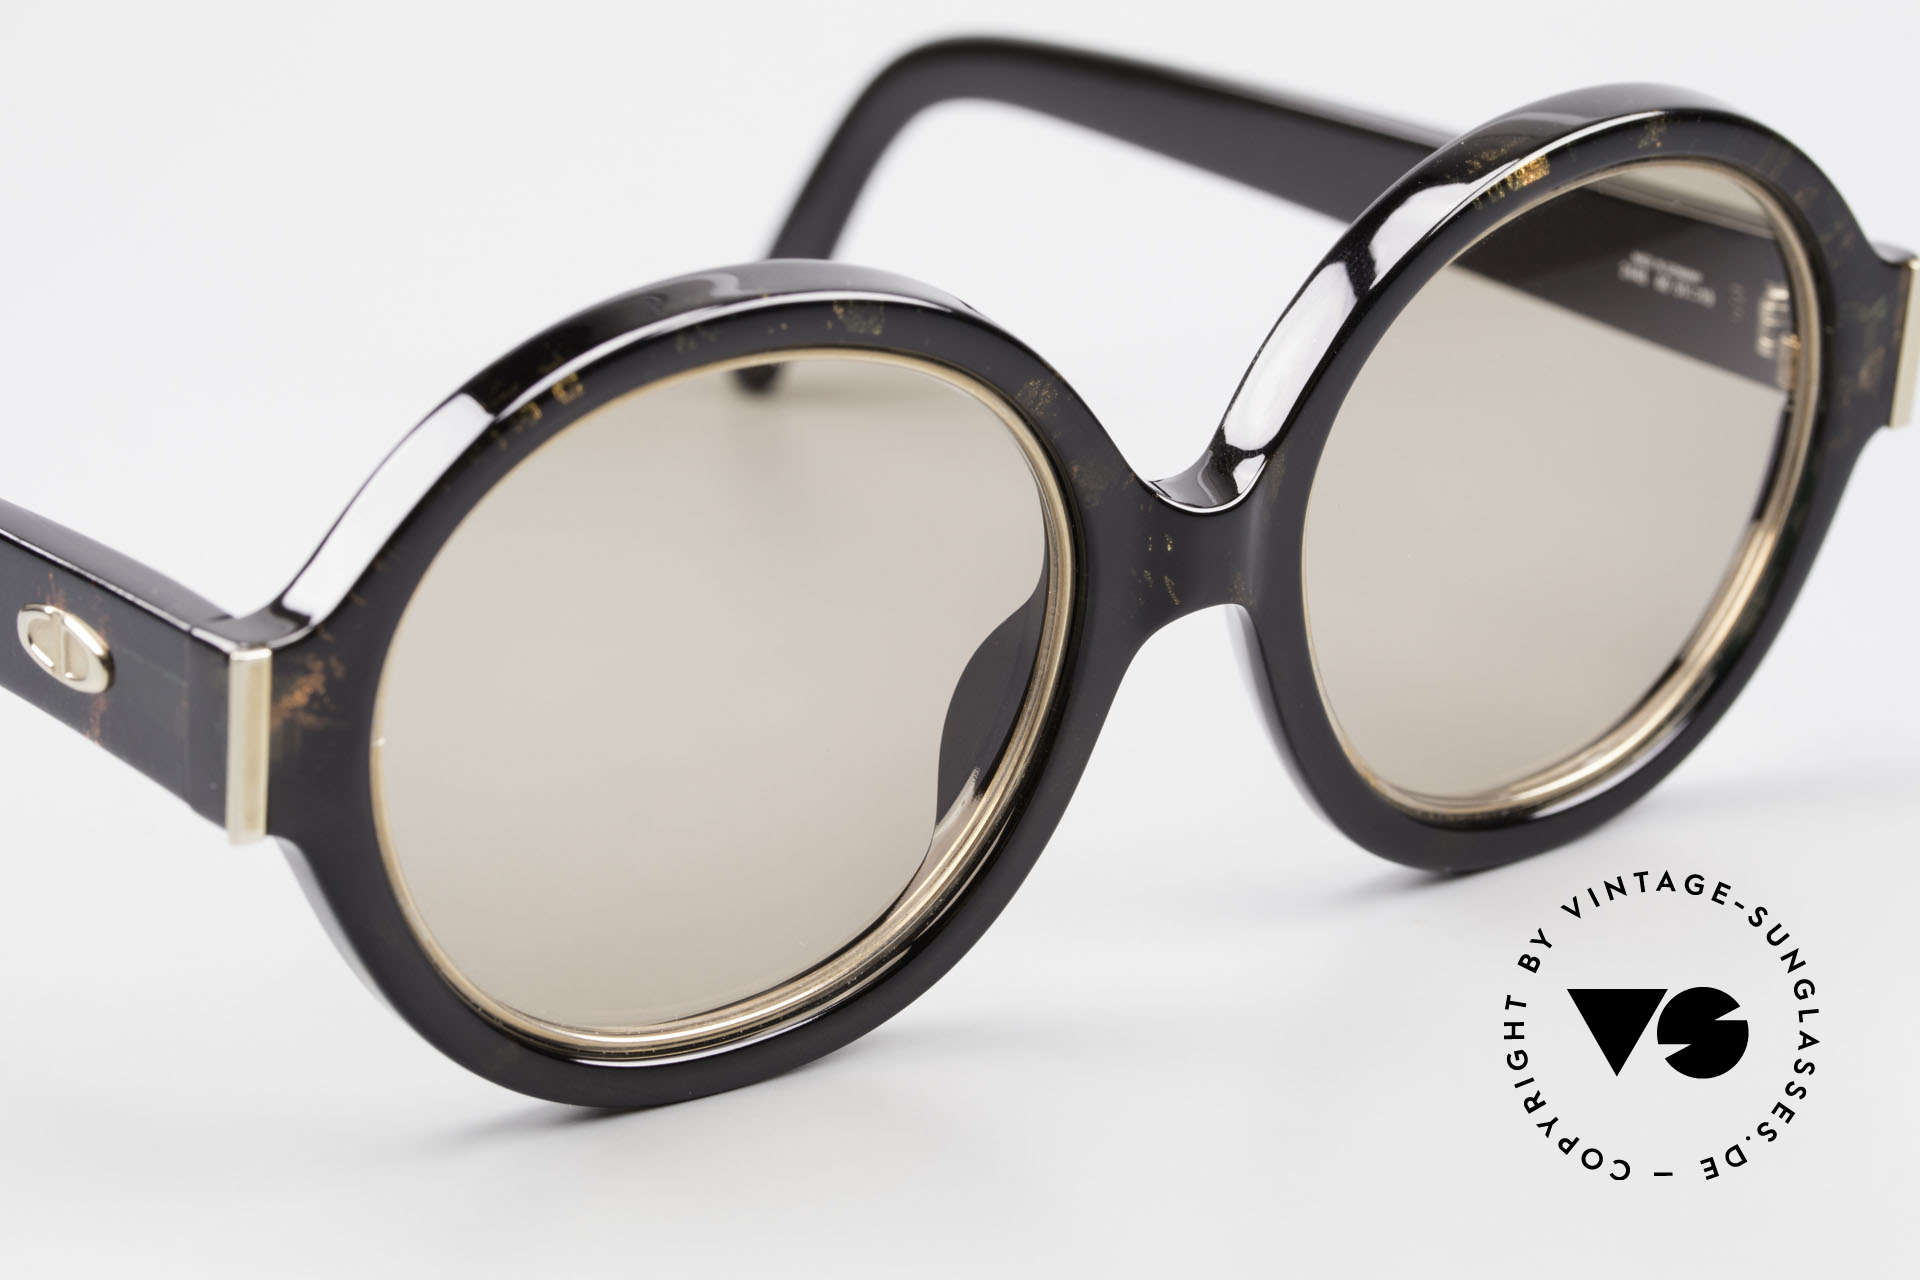 Christian Dior 2446 Round Ladies Sunglasses 80's, new old stock (like all our rare Christian Dior shades), Made for Women